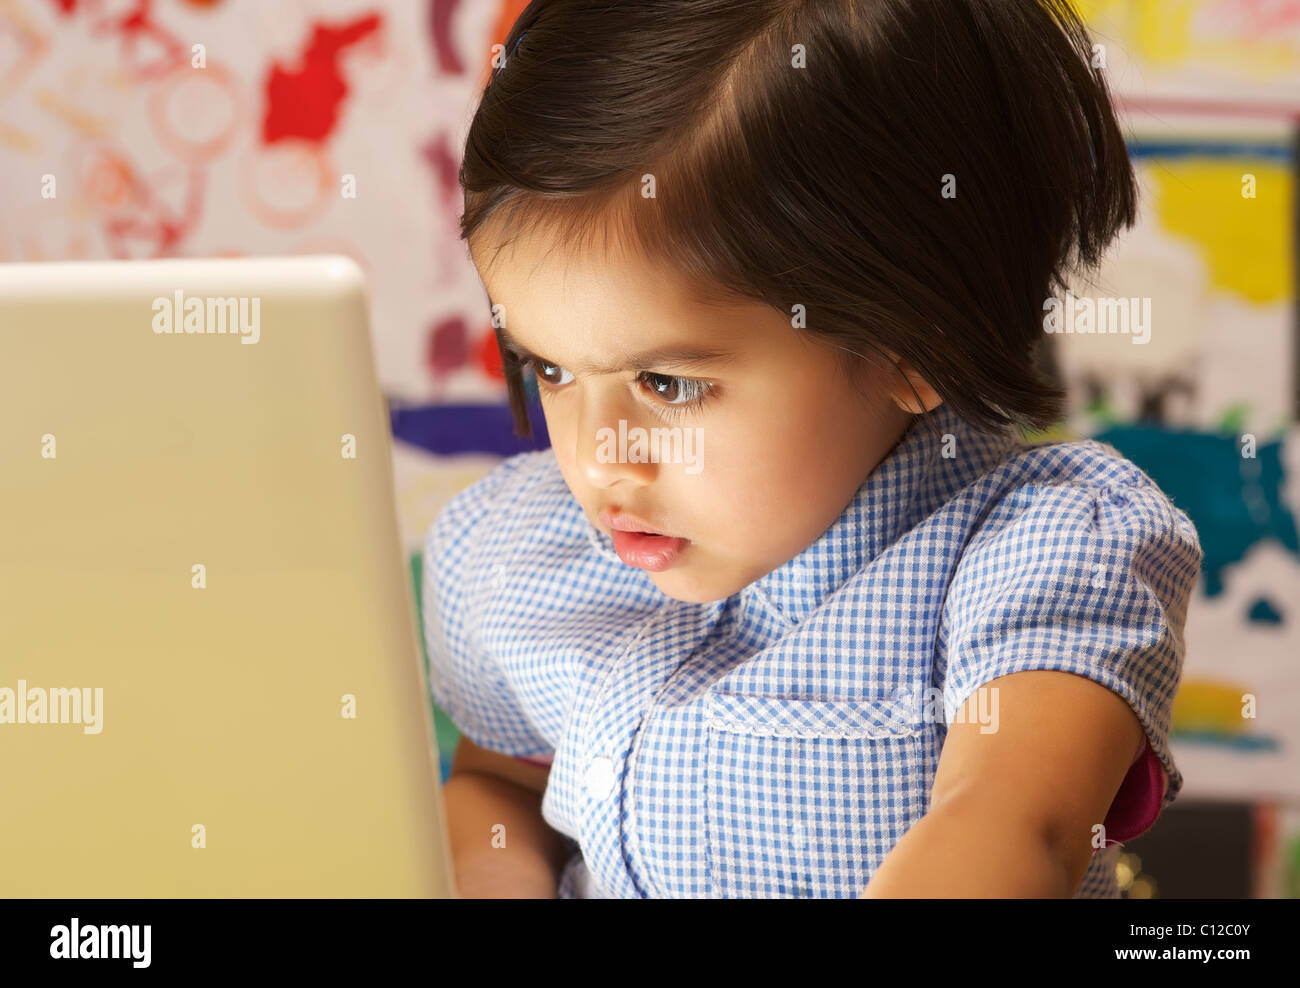 A young school girl looking at a laptop computer uk - Stock Image